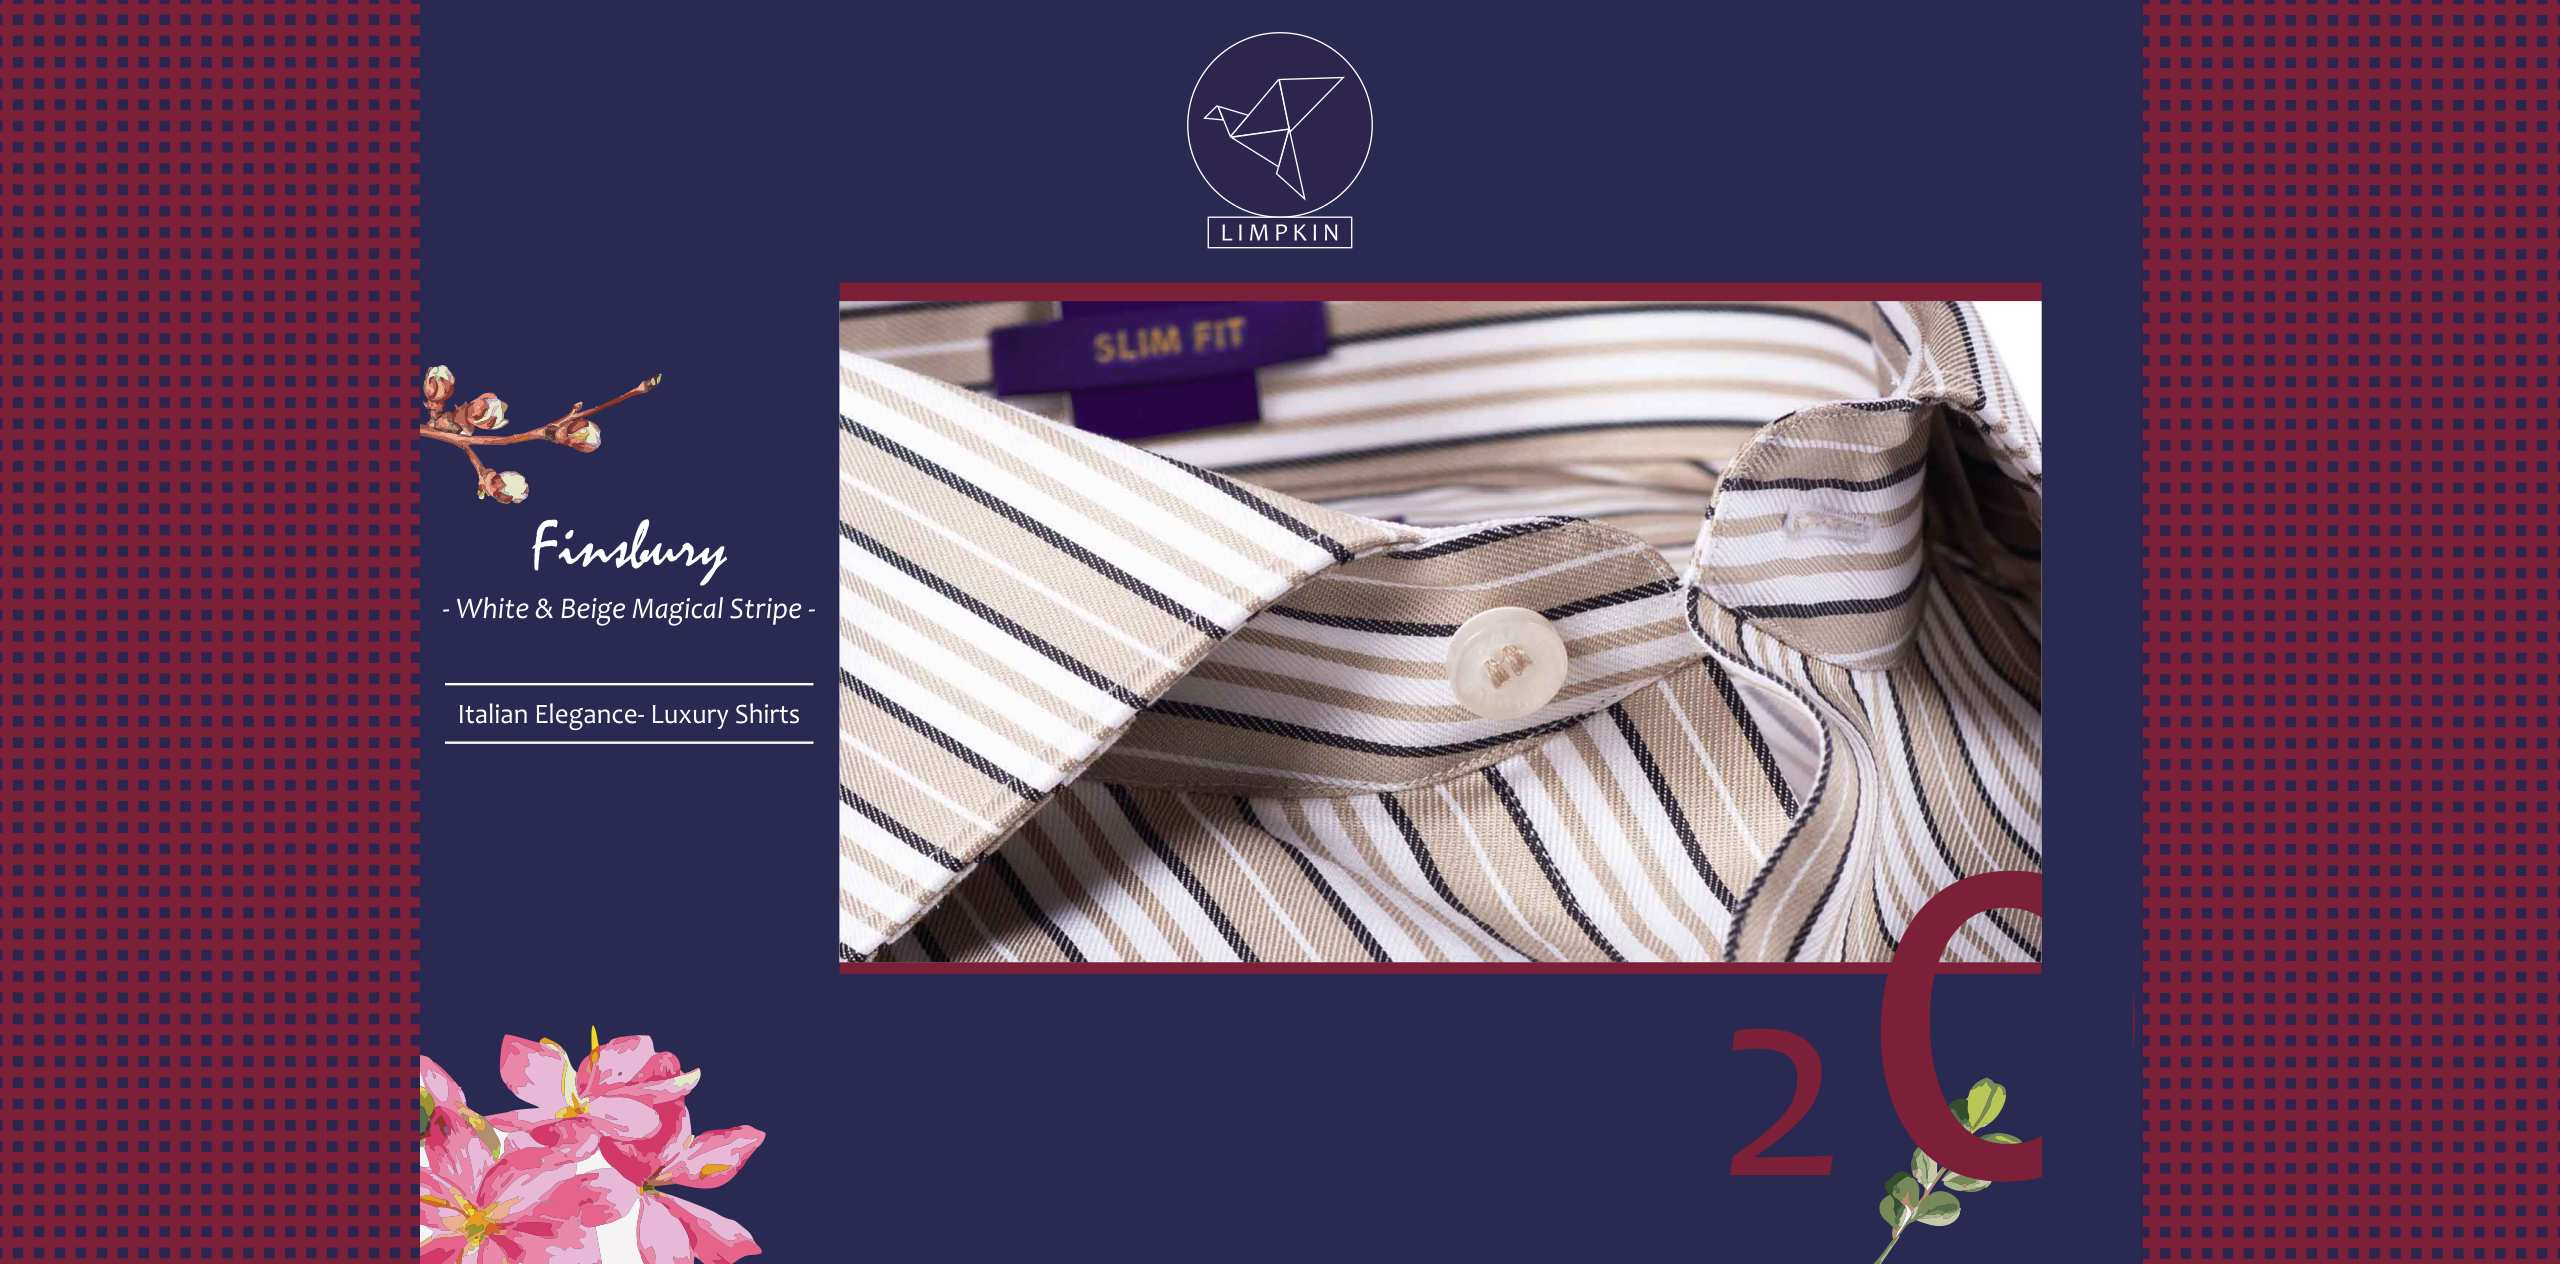 Finsbury- White & Beige Magical Stripe- 2/140 Egyptian Giza Cotton- Delivery from 28th March - Banner